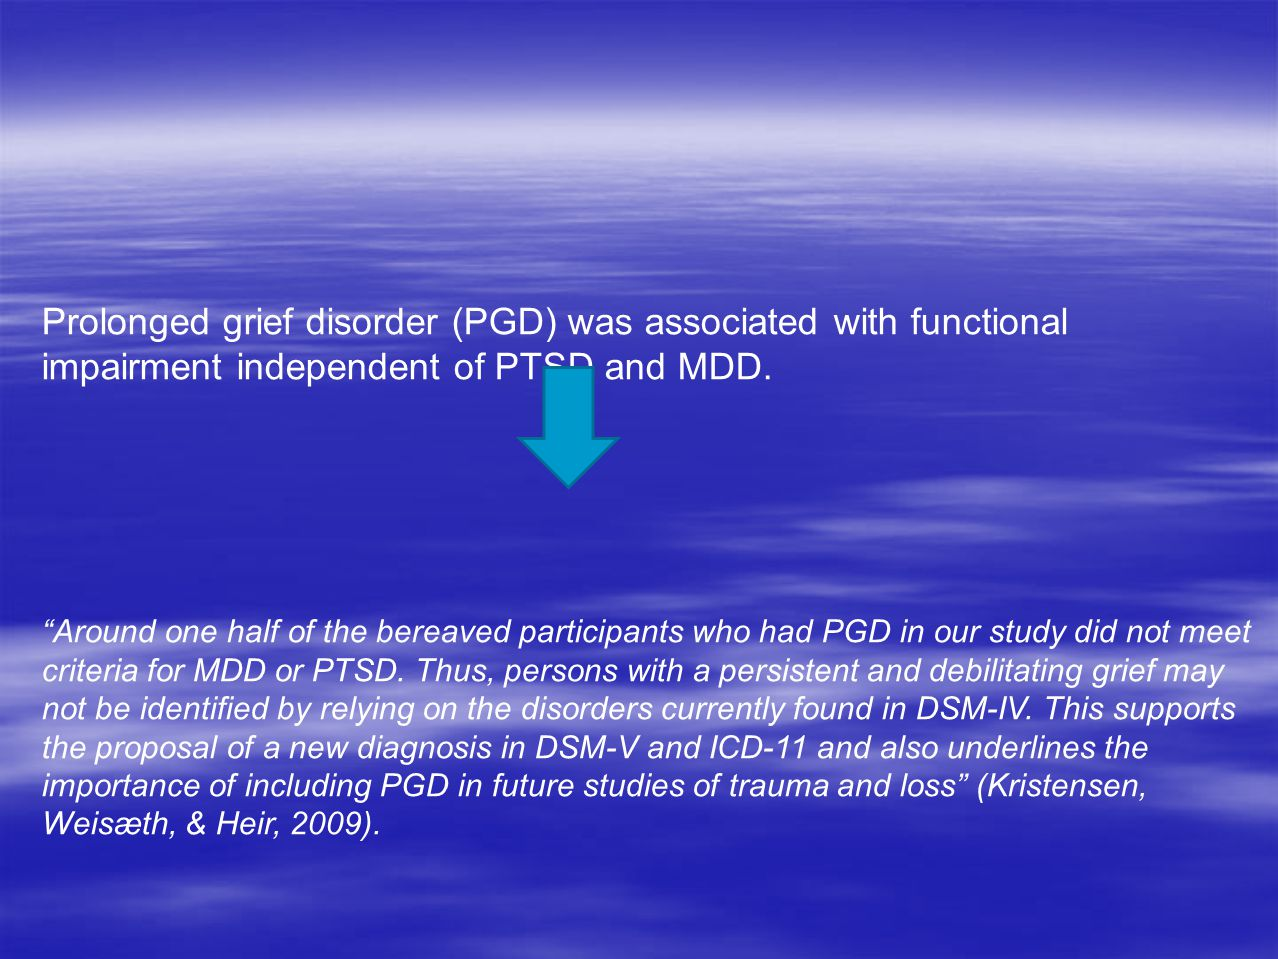 Prolonged grief disorder (PGD) was associated with functional impairment independent of PTSD and MDD.